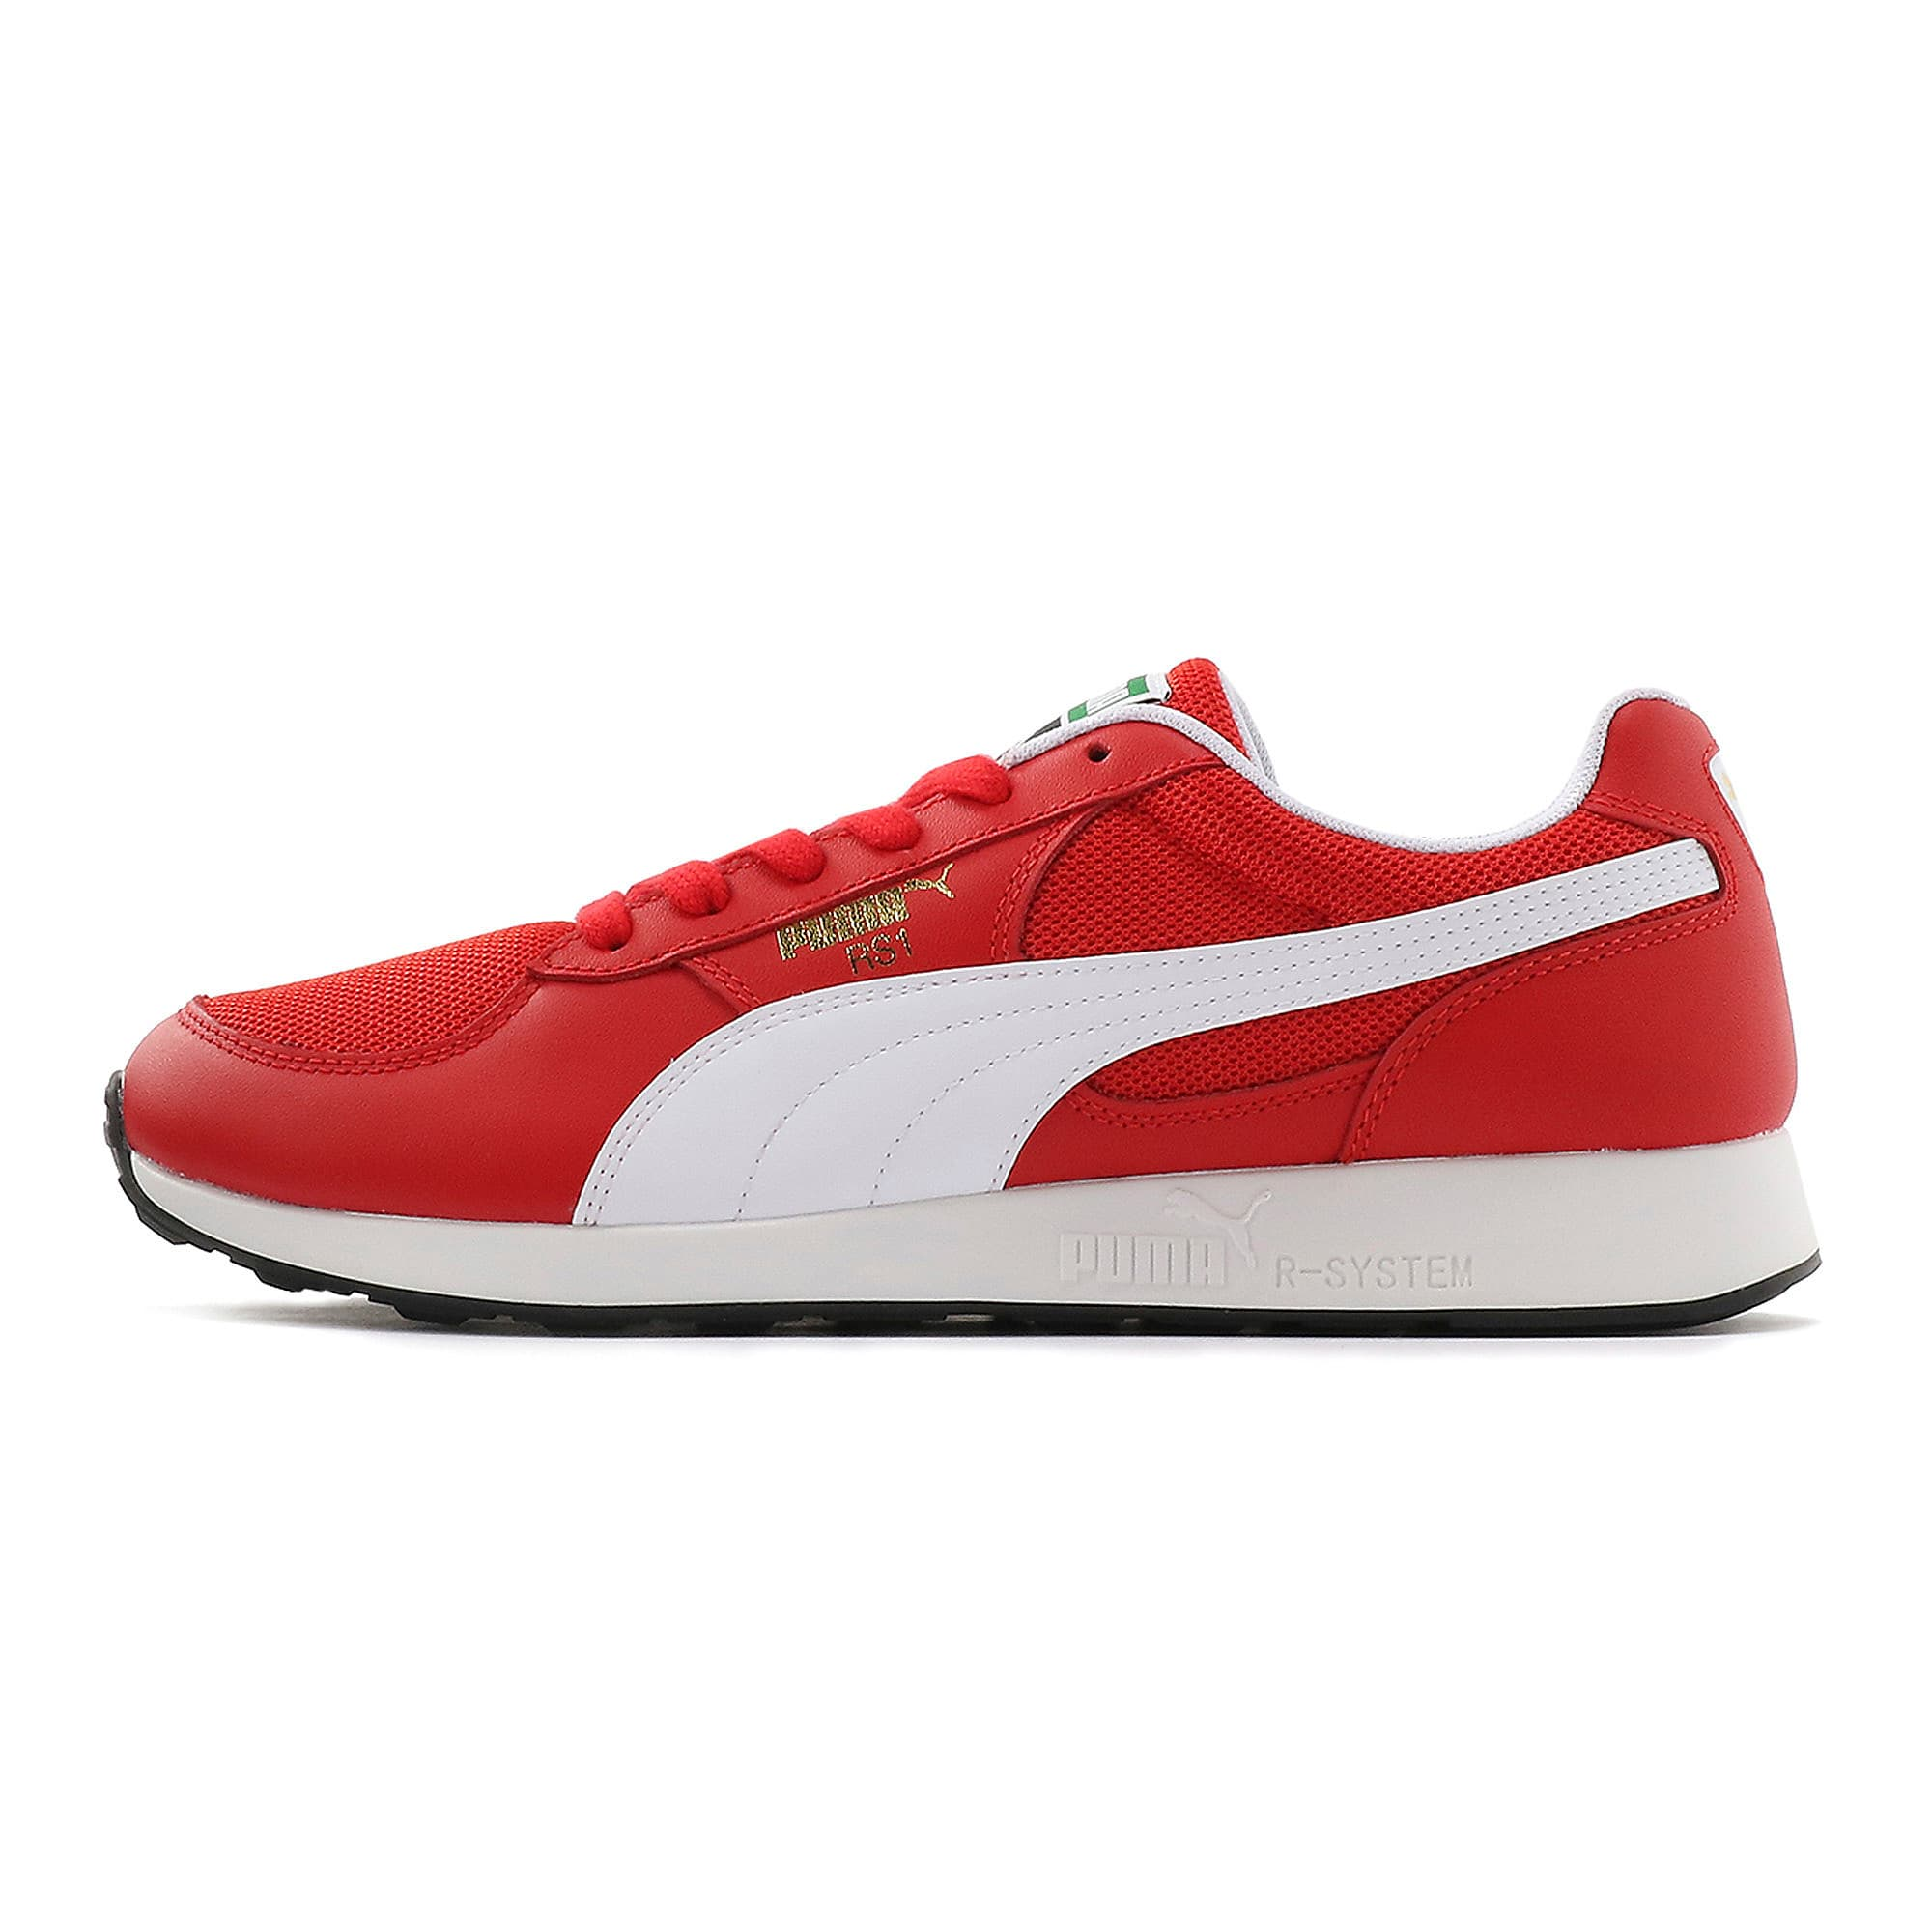 Thumbnail 1 of RS-1 OG CLONE Sneakers, High Risk Red-Puma Black, medium